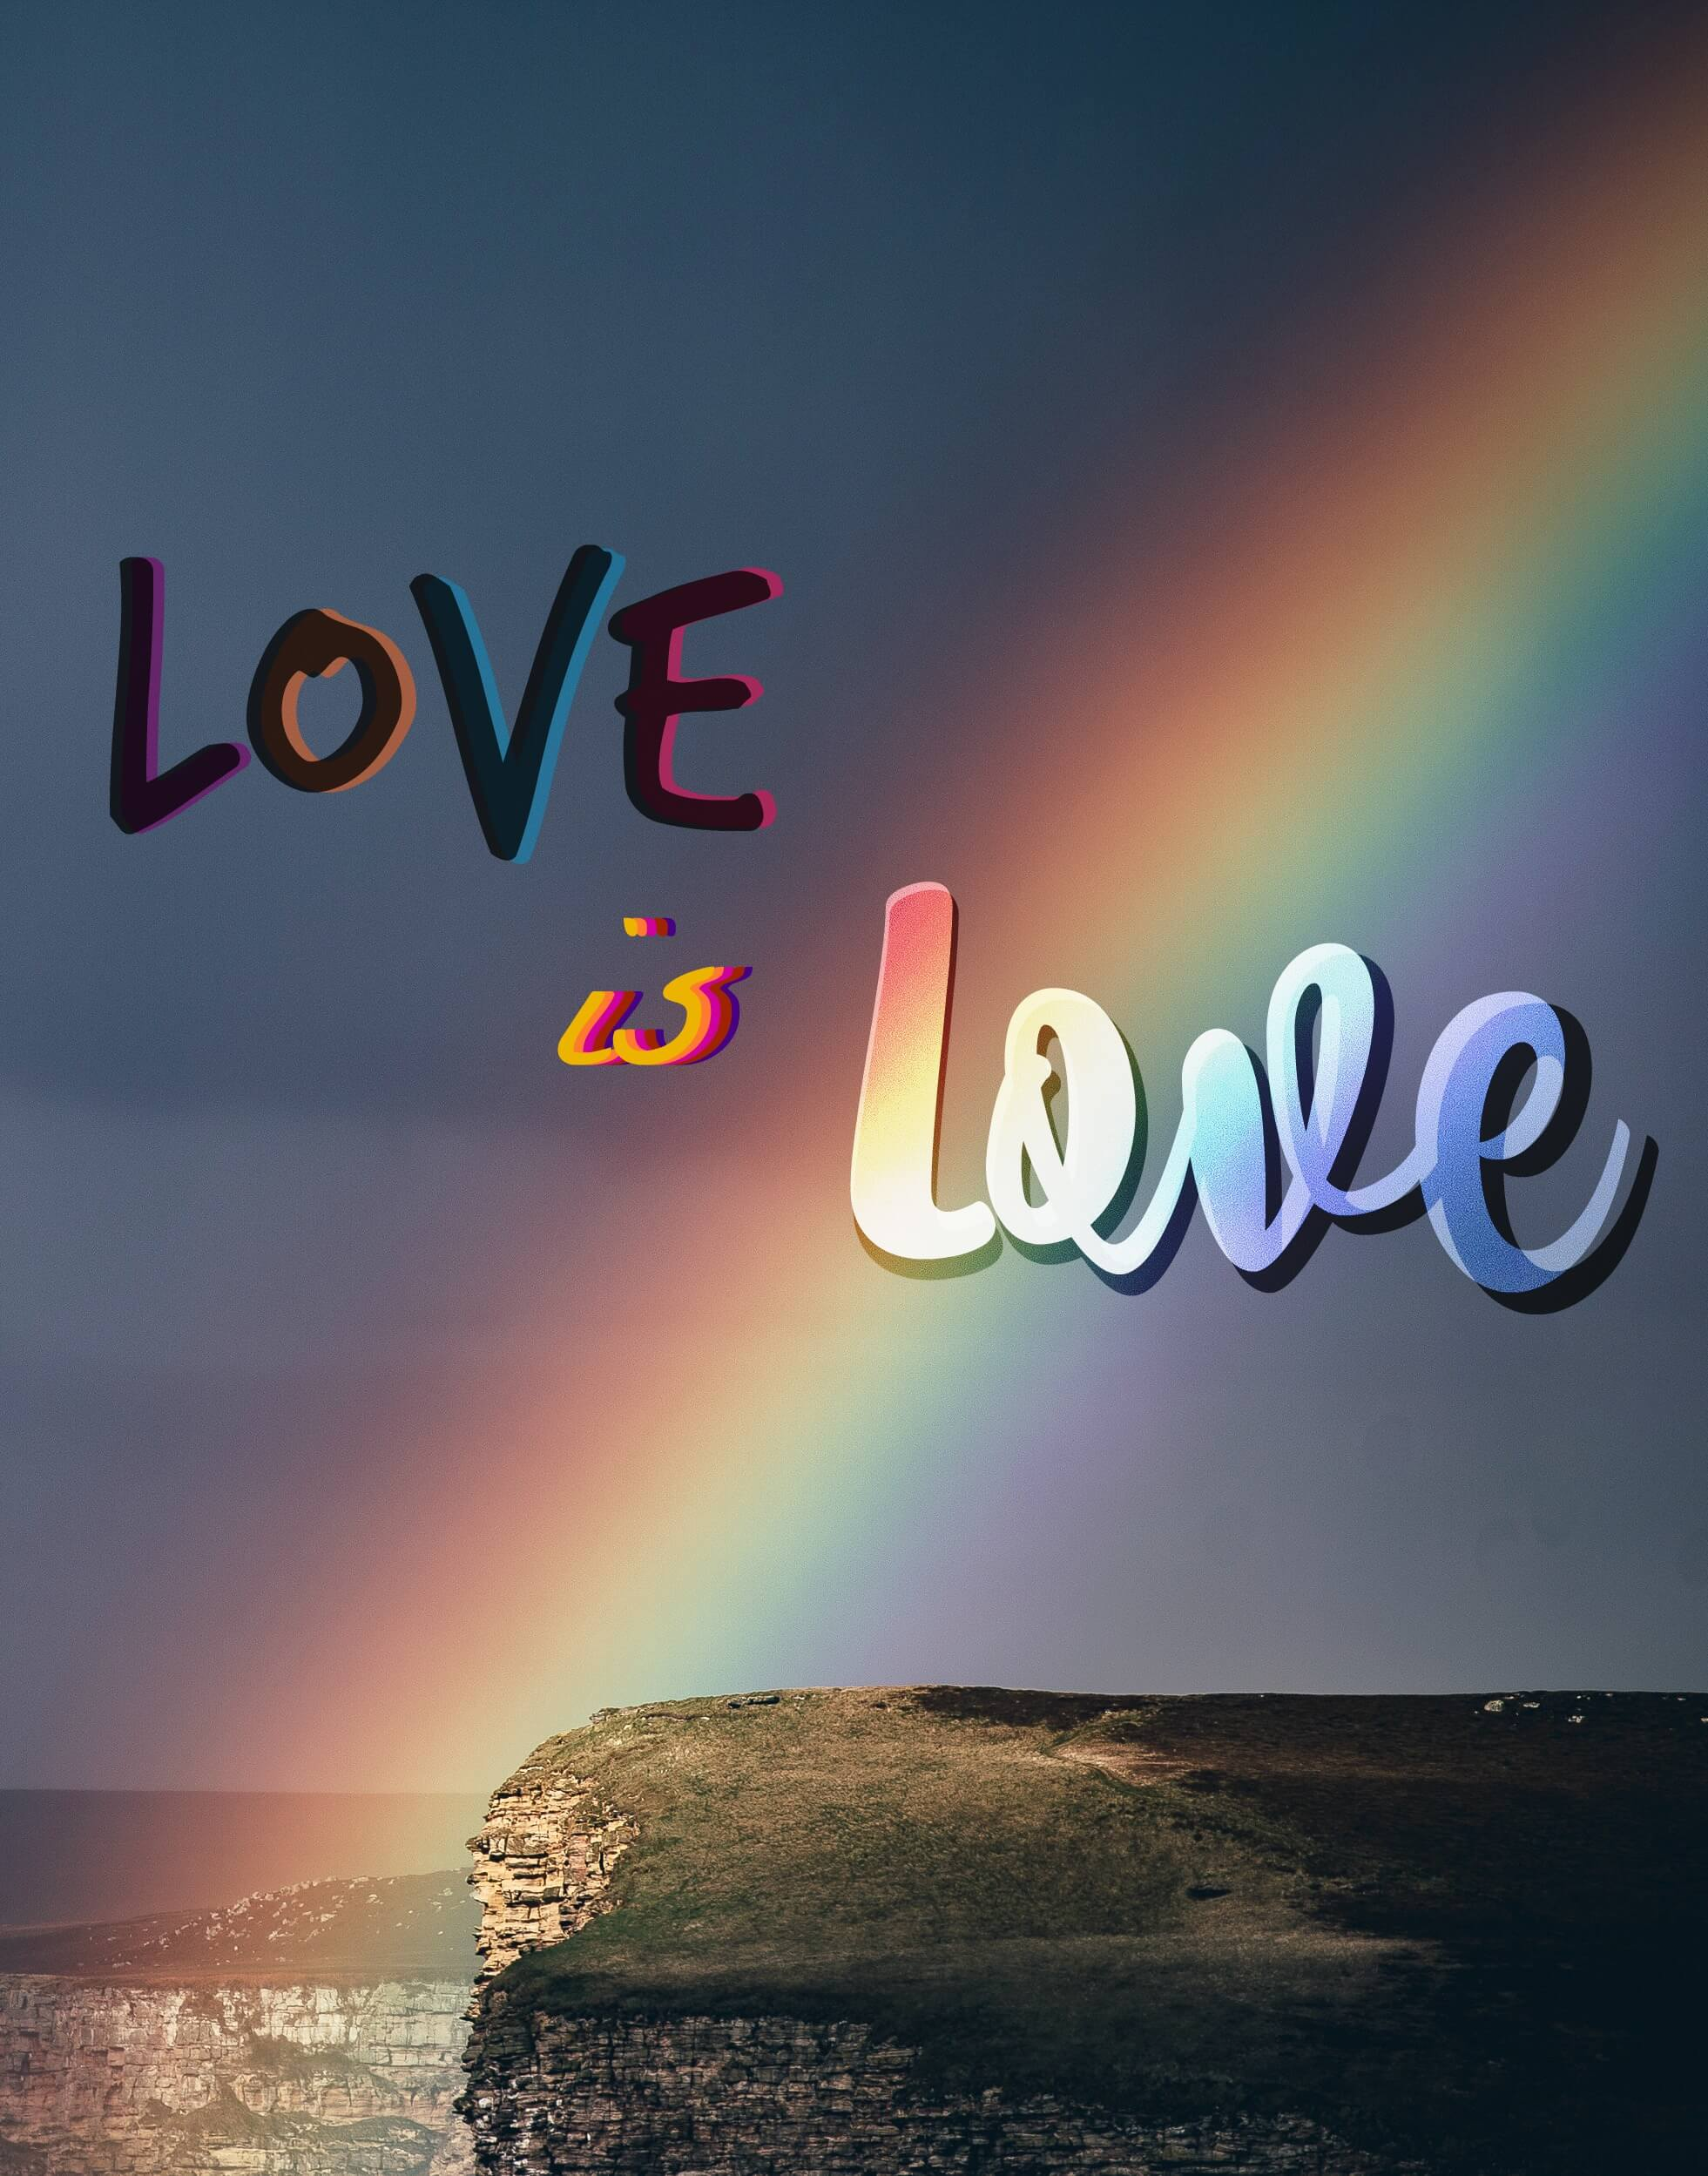 """Rainbow infront of a cliff on a stormy day - with rainbow """"Love is love"""" Overlayed"""